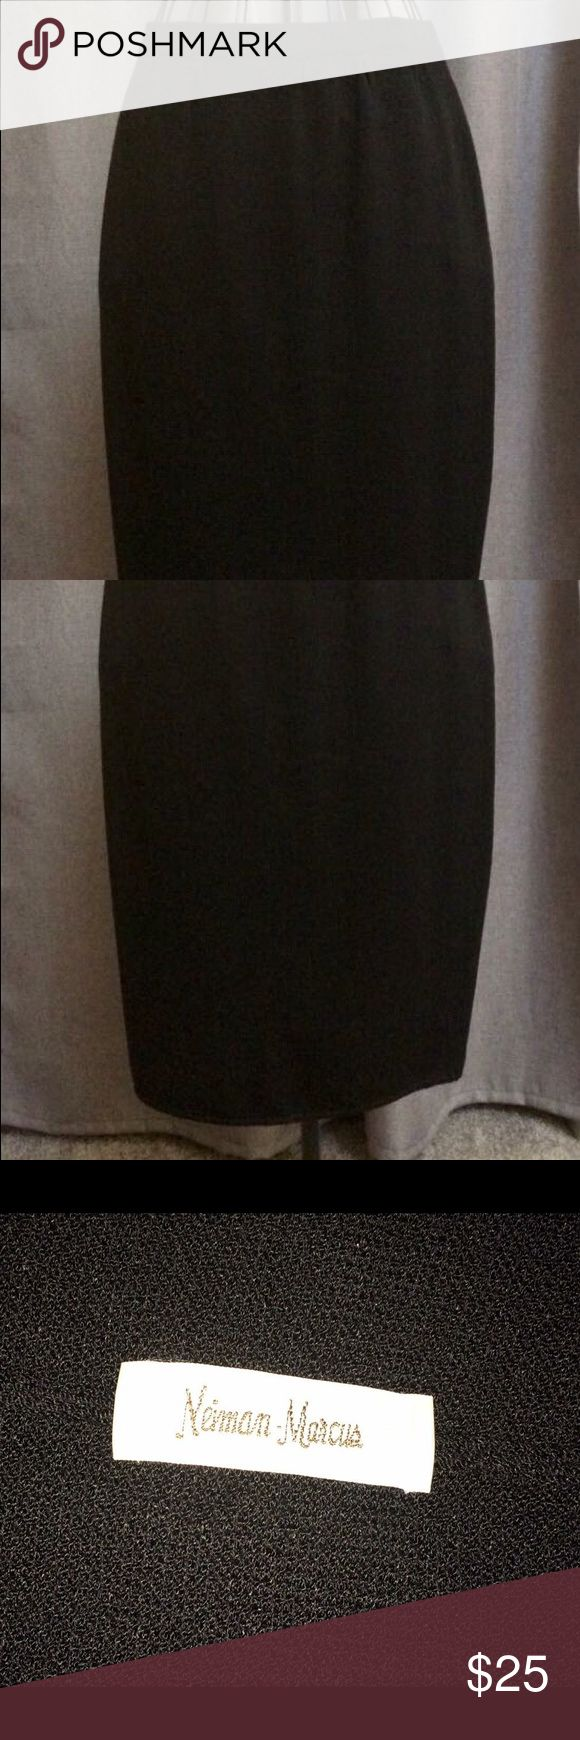 NEIMAN MARCUS knit skirt 🖤 Neiman Marcus black skirt (most likely vintage)! No size tag inside skirt, only the store label (pictured). Waist measures at approx 27 inches (will stretch a bit with elastic waistband), total skirt length is 25 inches. Gorgeous knit skirt, like-NEW condition! 🖤 Neiman Marcus Skirts Midi